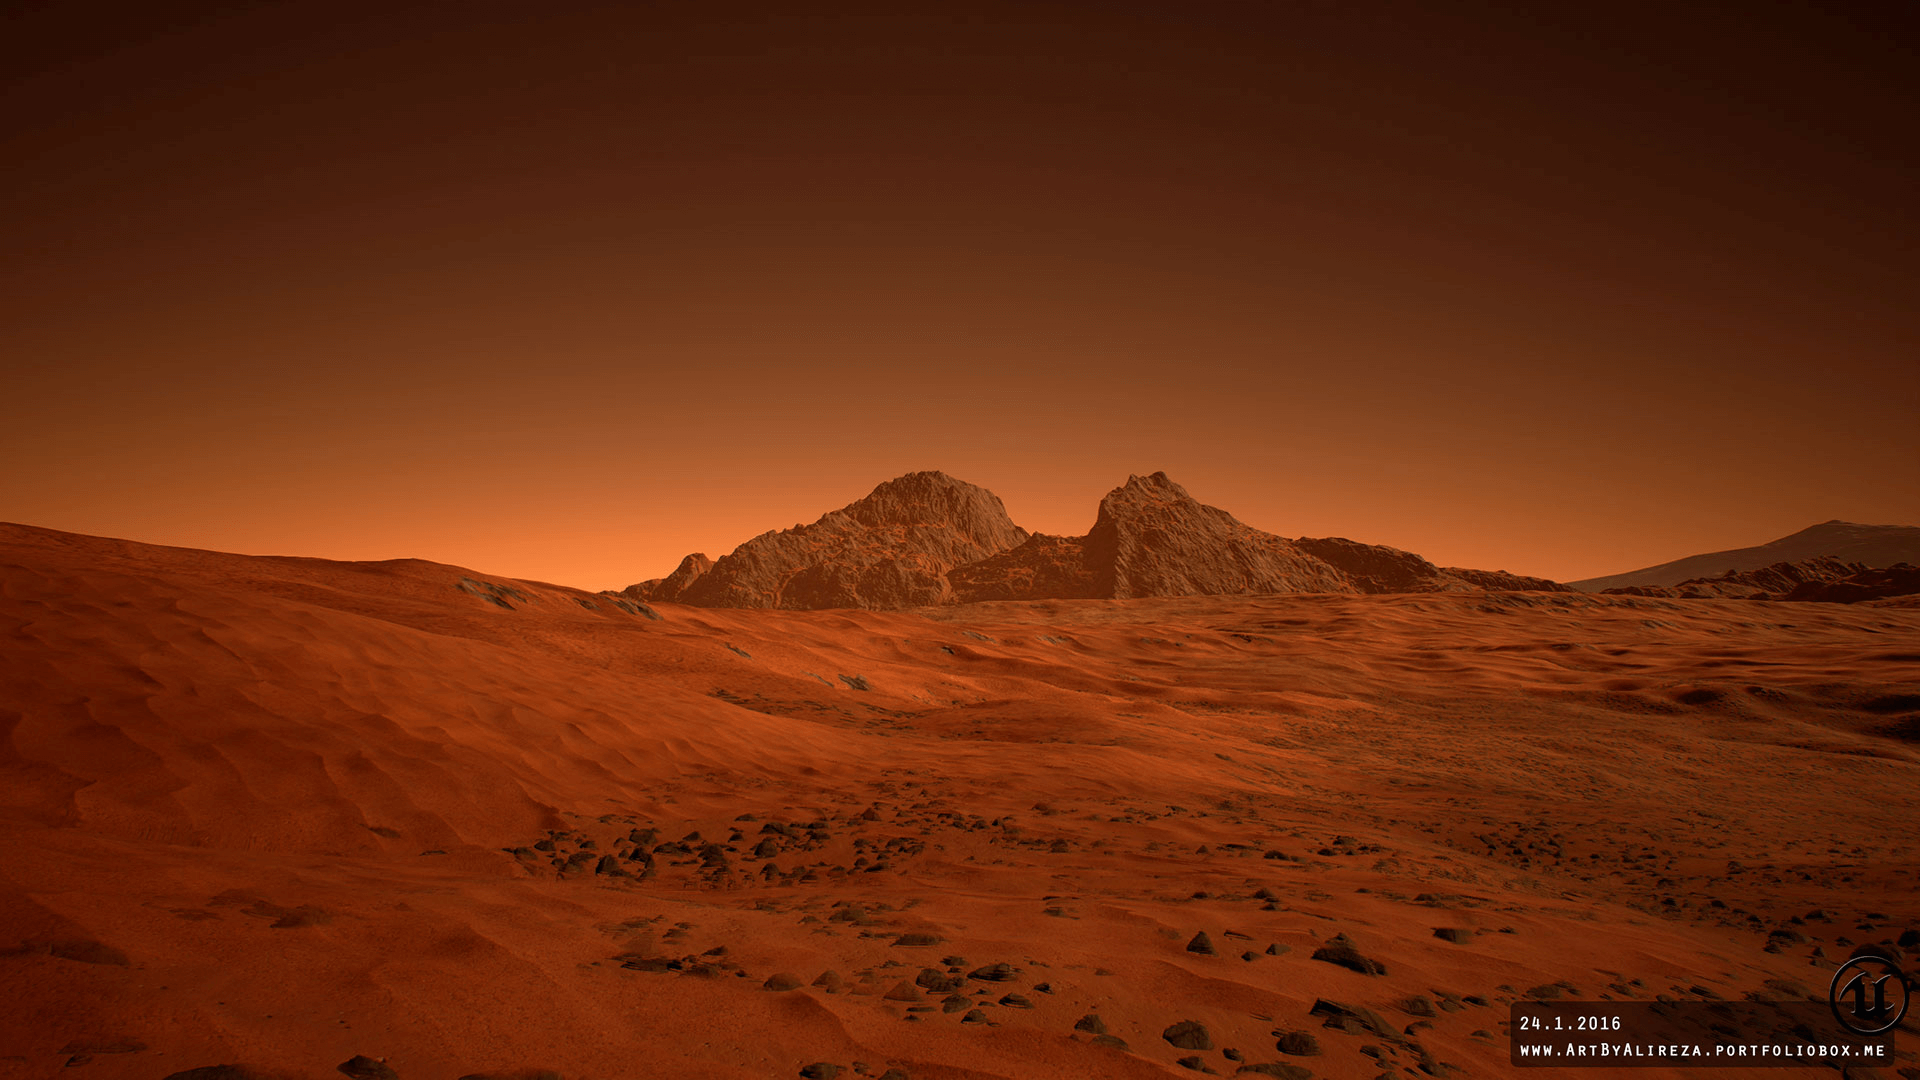 Mars landscape by pixel perfect polygons in environments for Landscape images